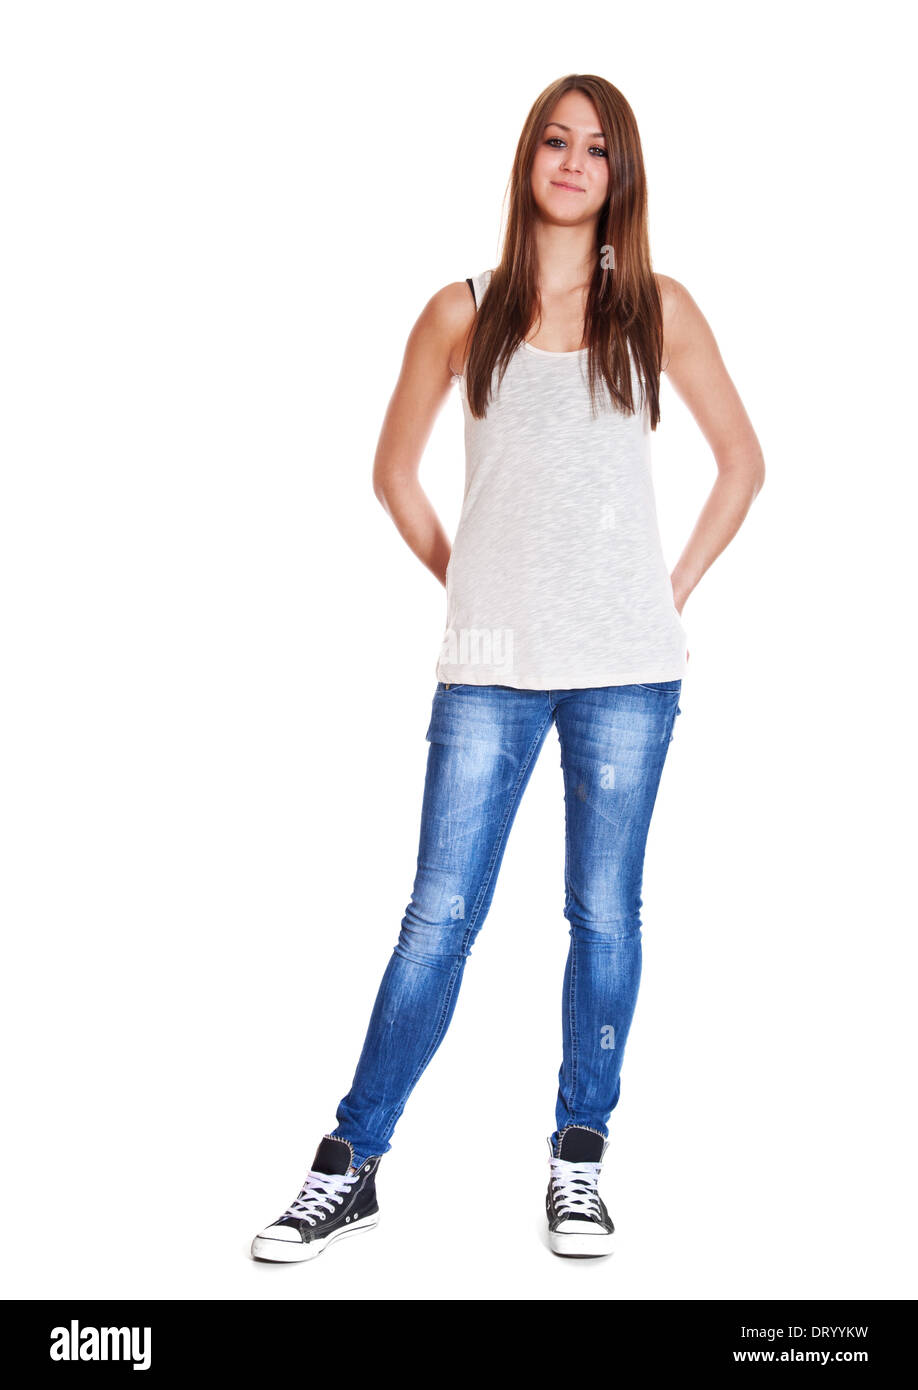 Full length shot of an attractive young woman. All on white background. - Stock Image